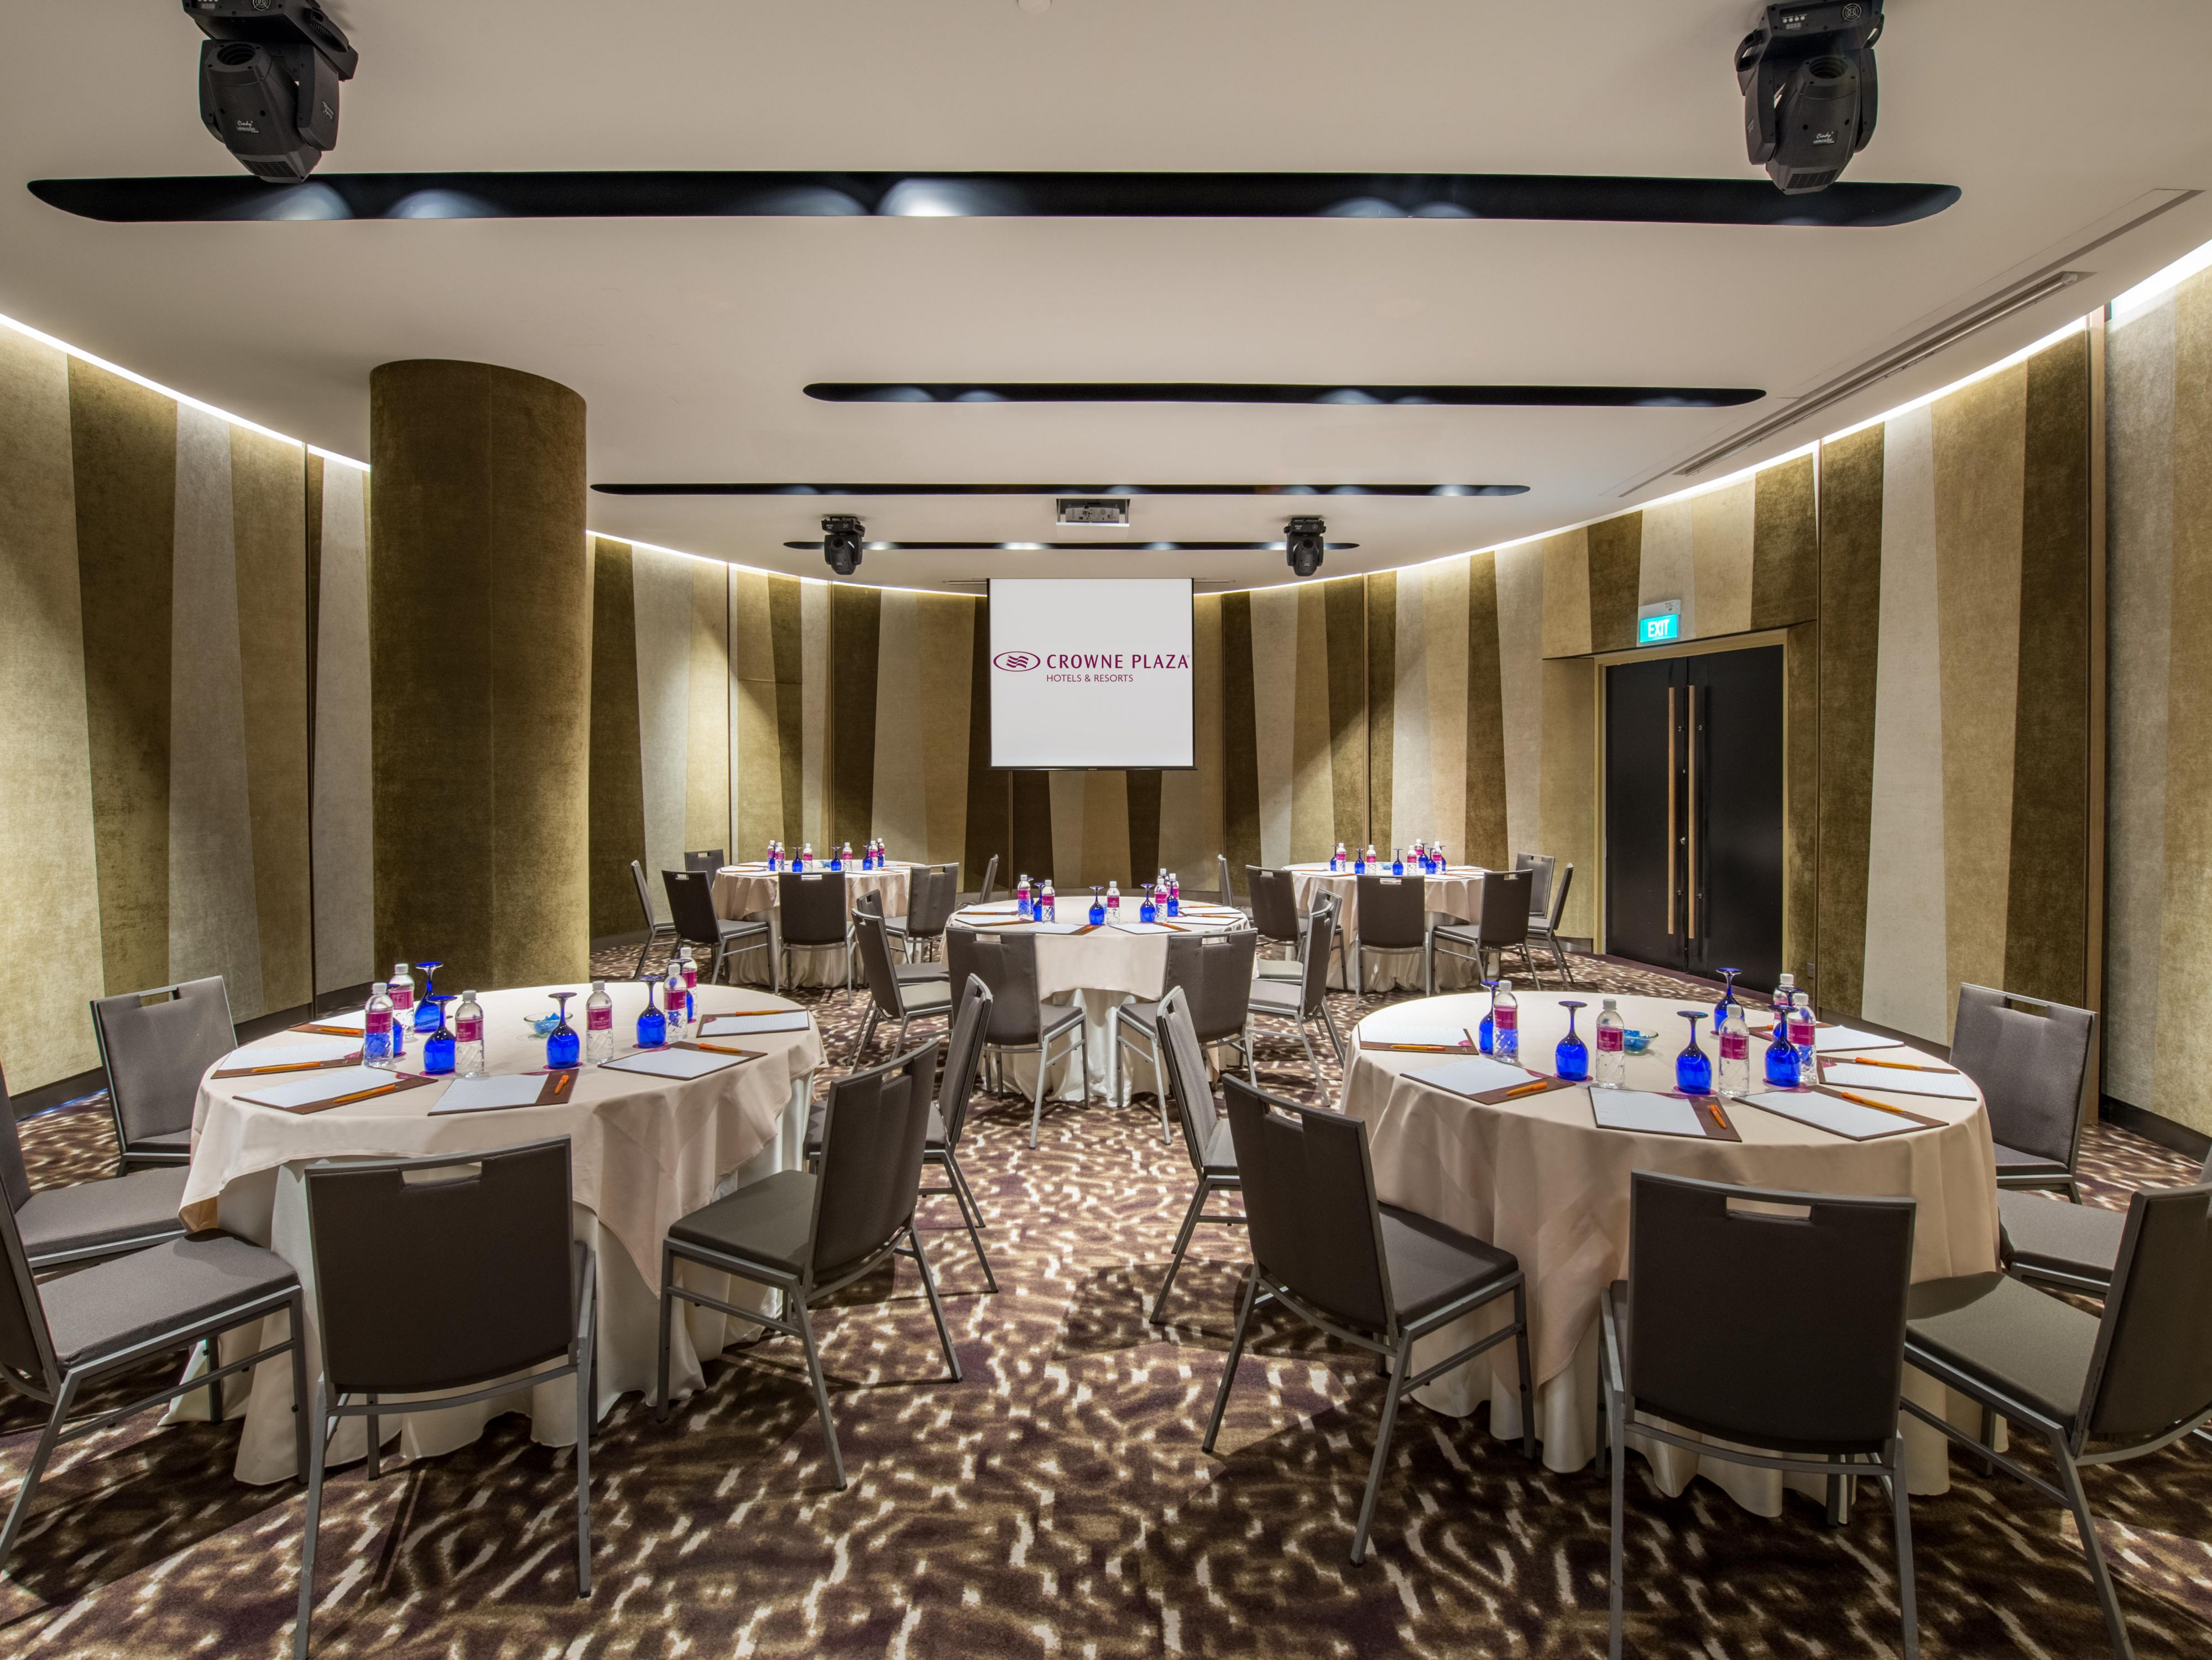 Crowne Plaza Changi Airport - Hotel Meeting Rooms for Rent